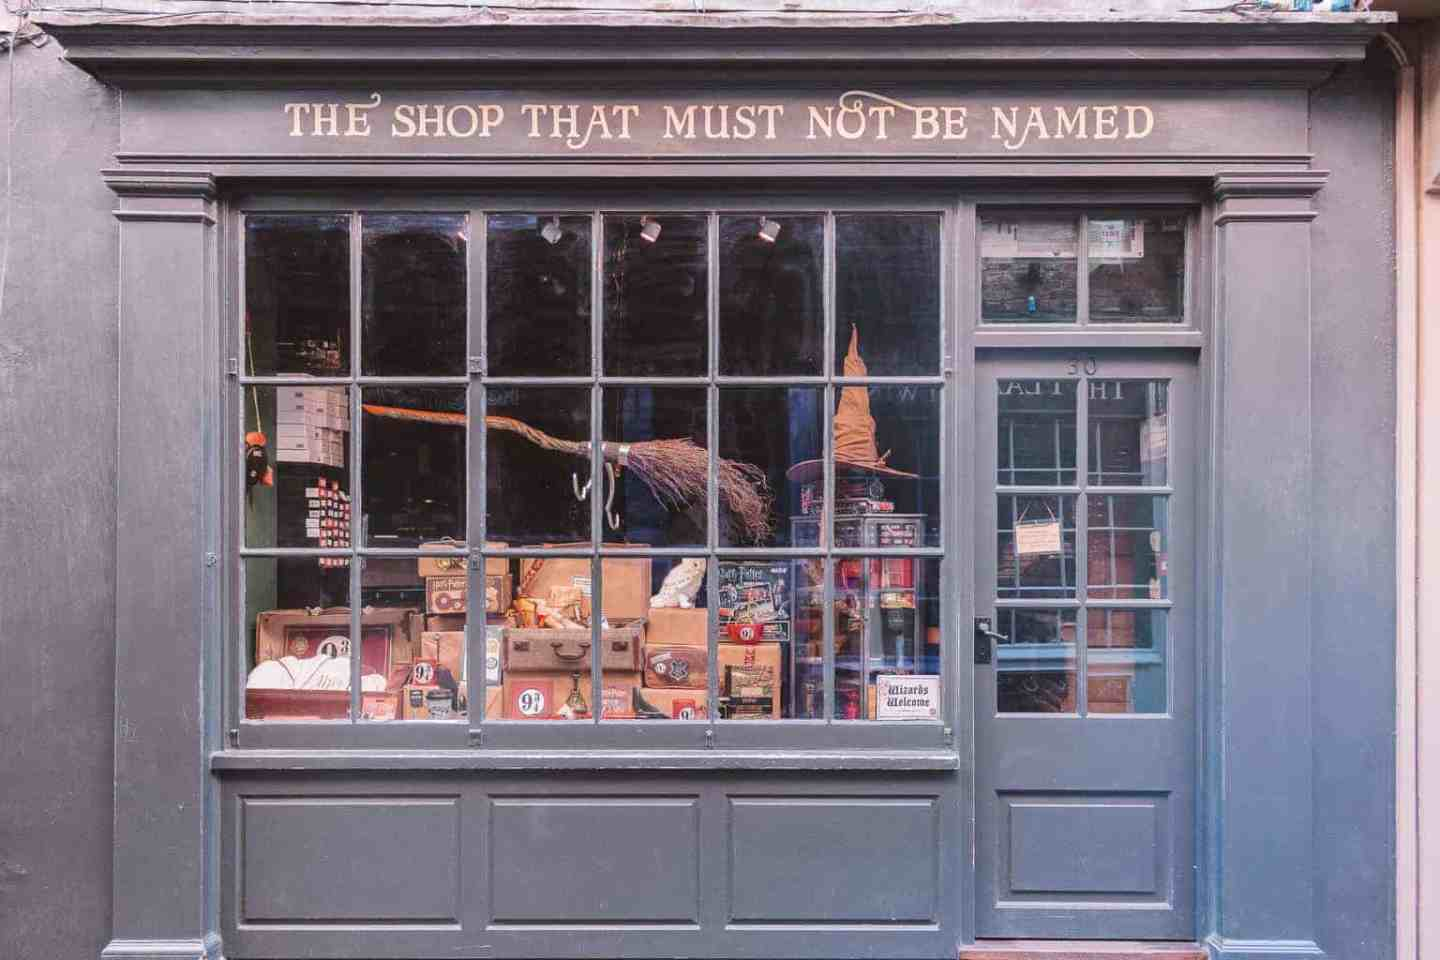 The Shop That Must Not Be Named - The Ultimate Guide to Harry Potter in York